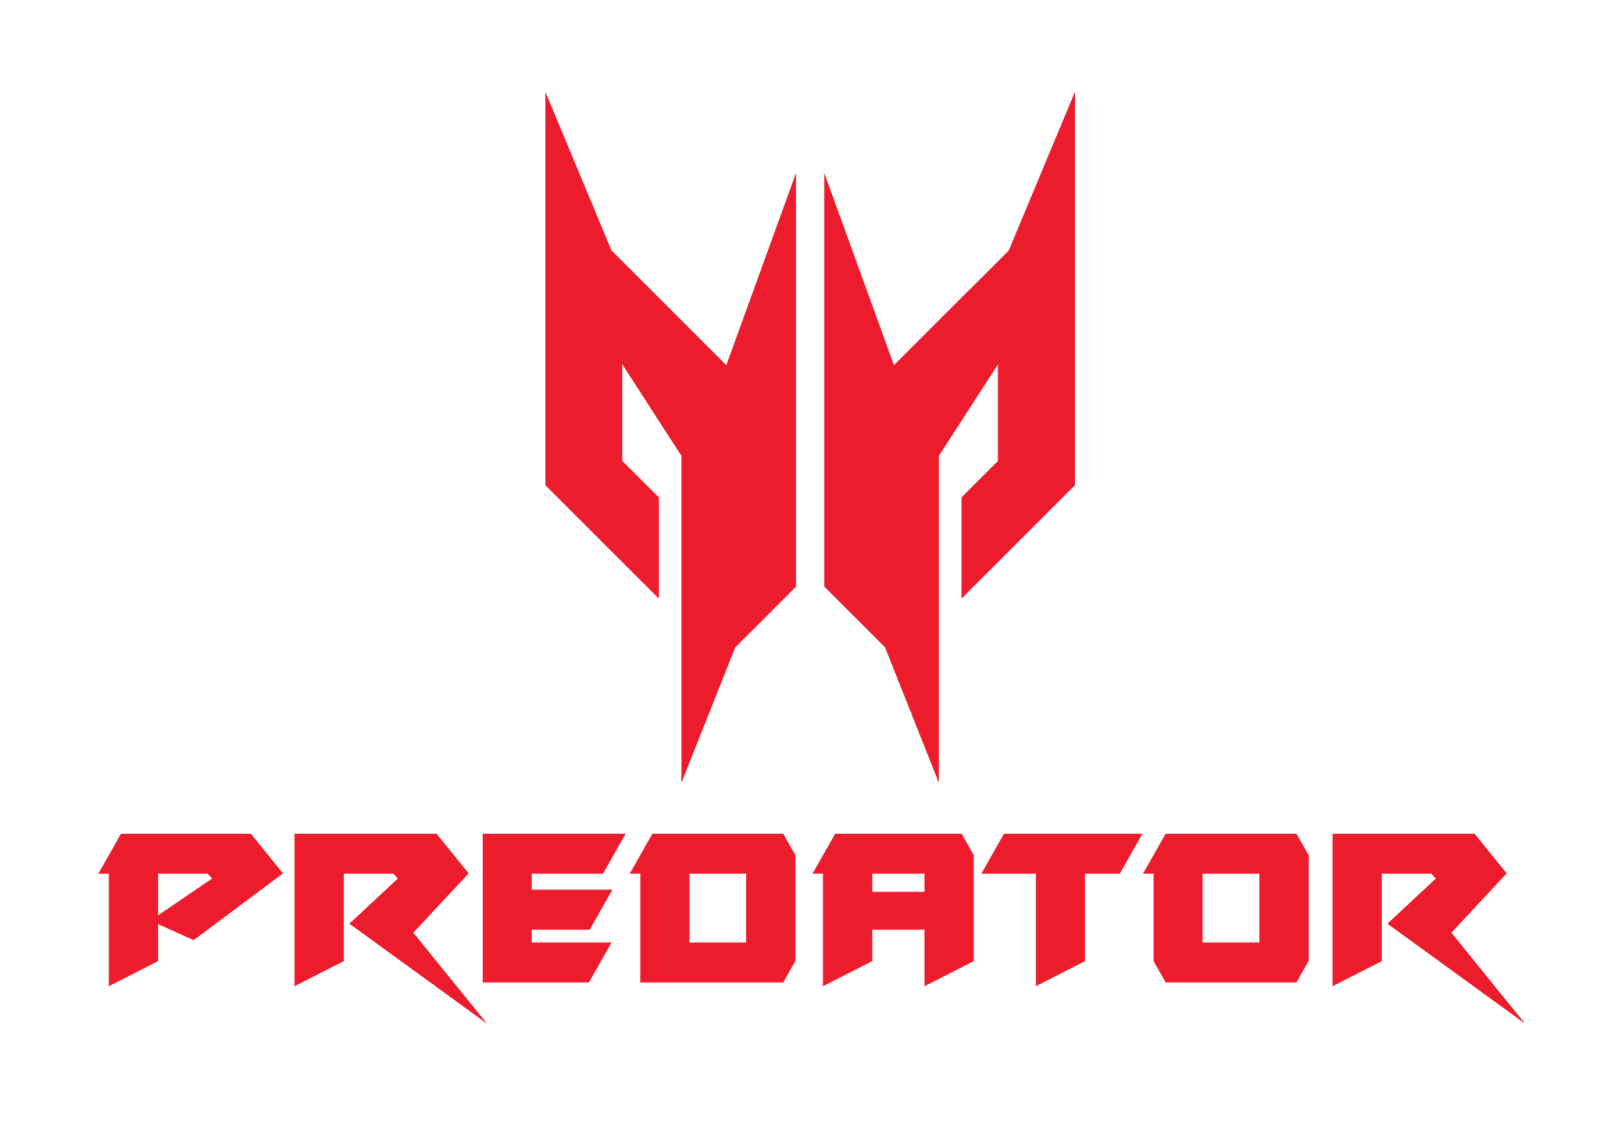 Predator logo png. Acer launches products techreview